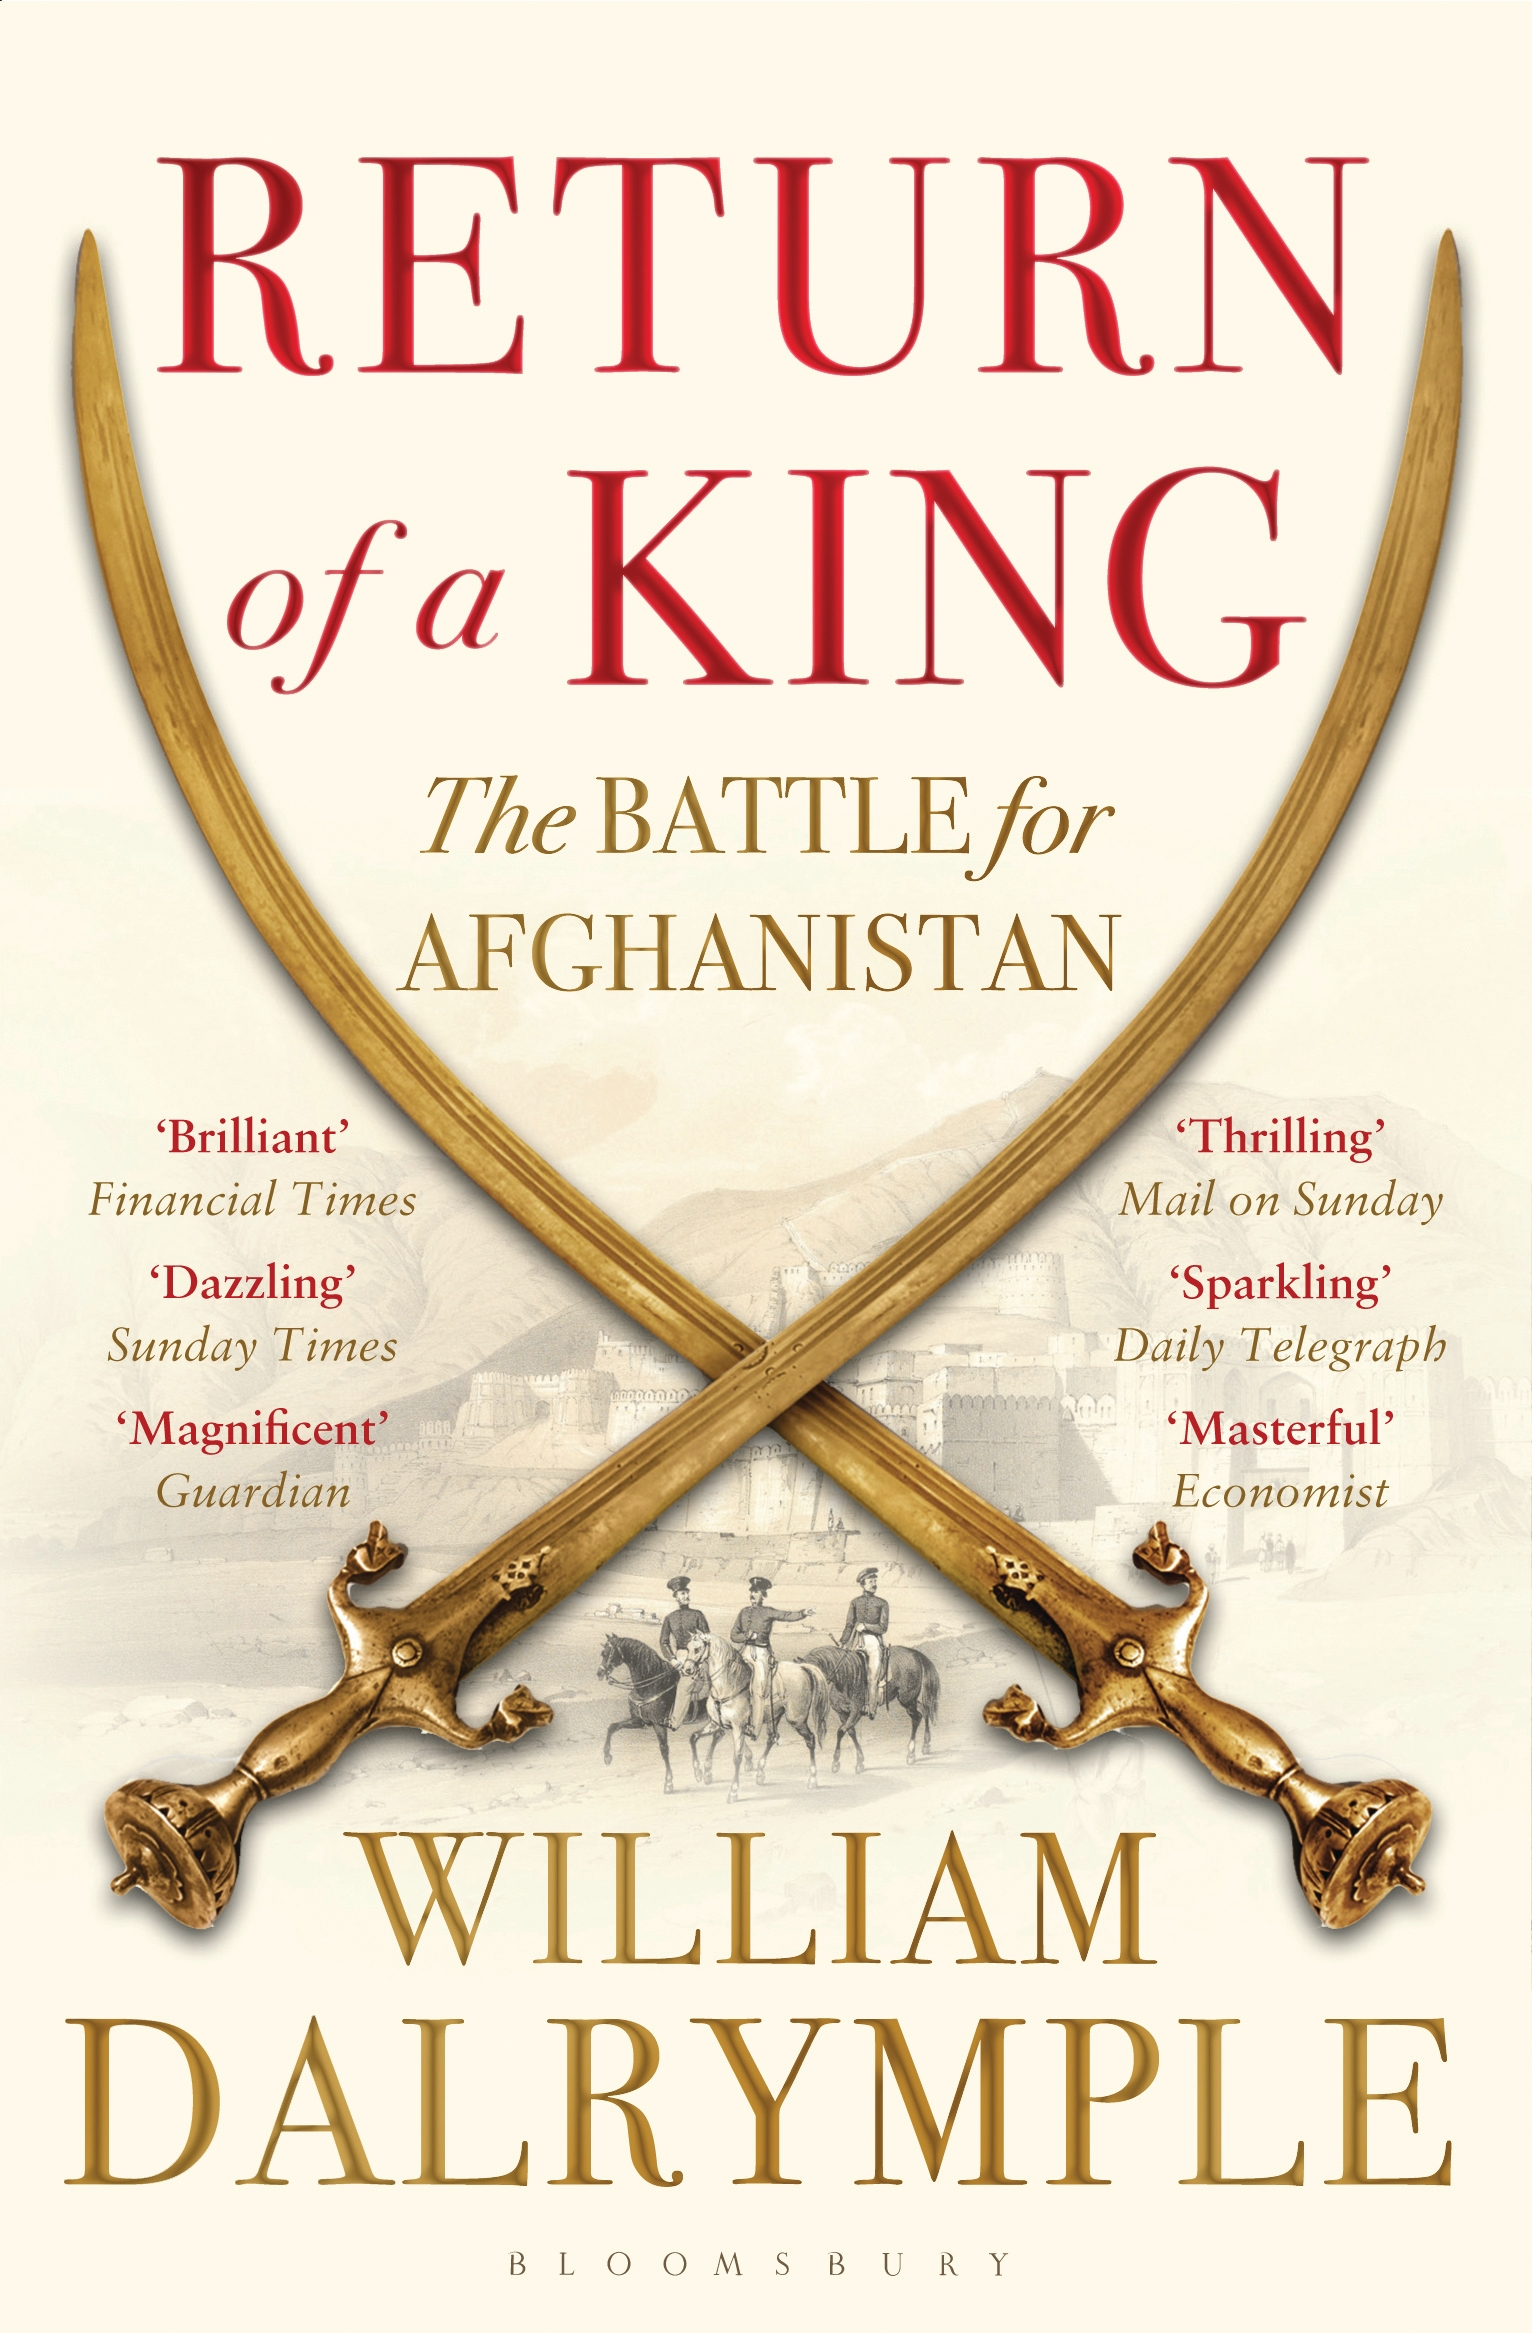 Return of a King The Battle for Afghanistan